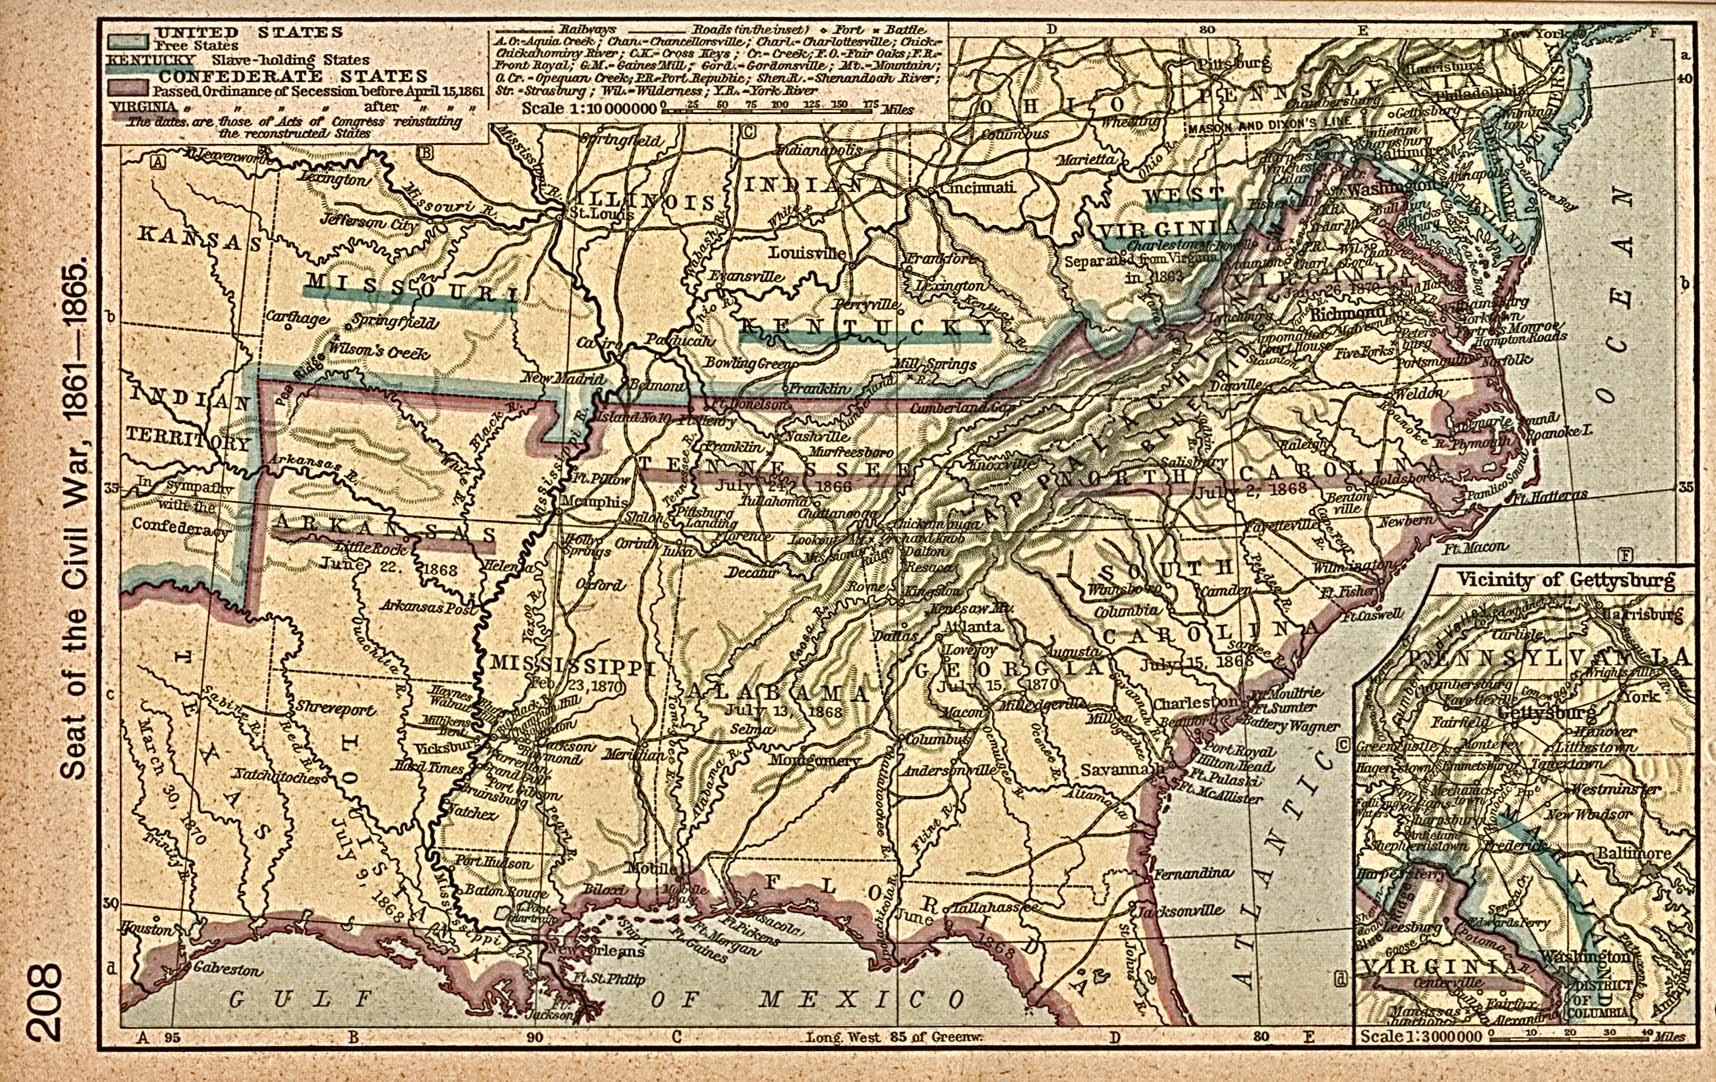 Map of the Seat of the American Civil War 1861 - 1865